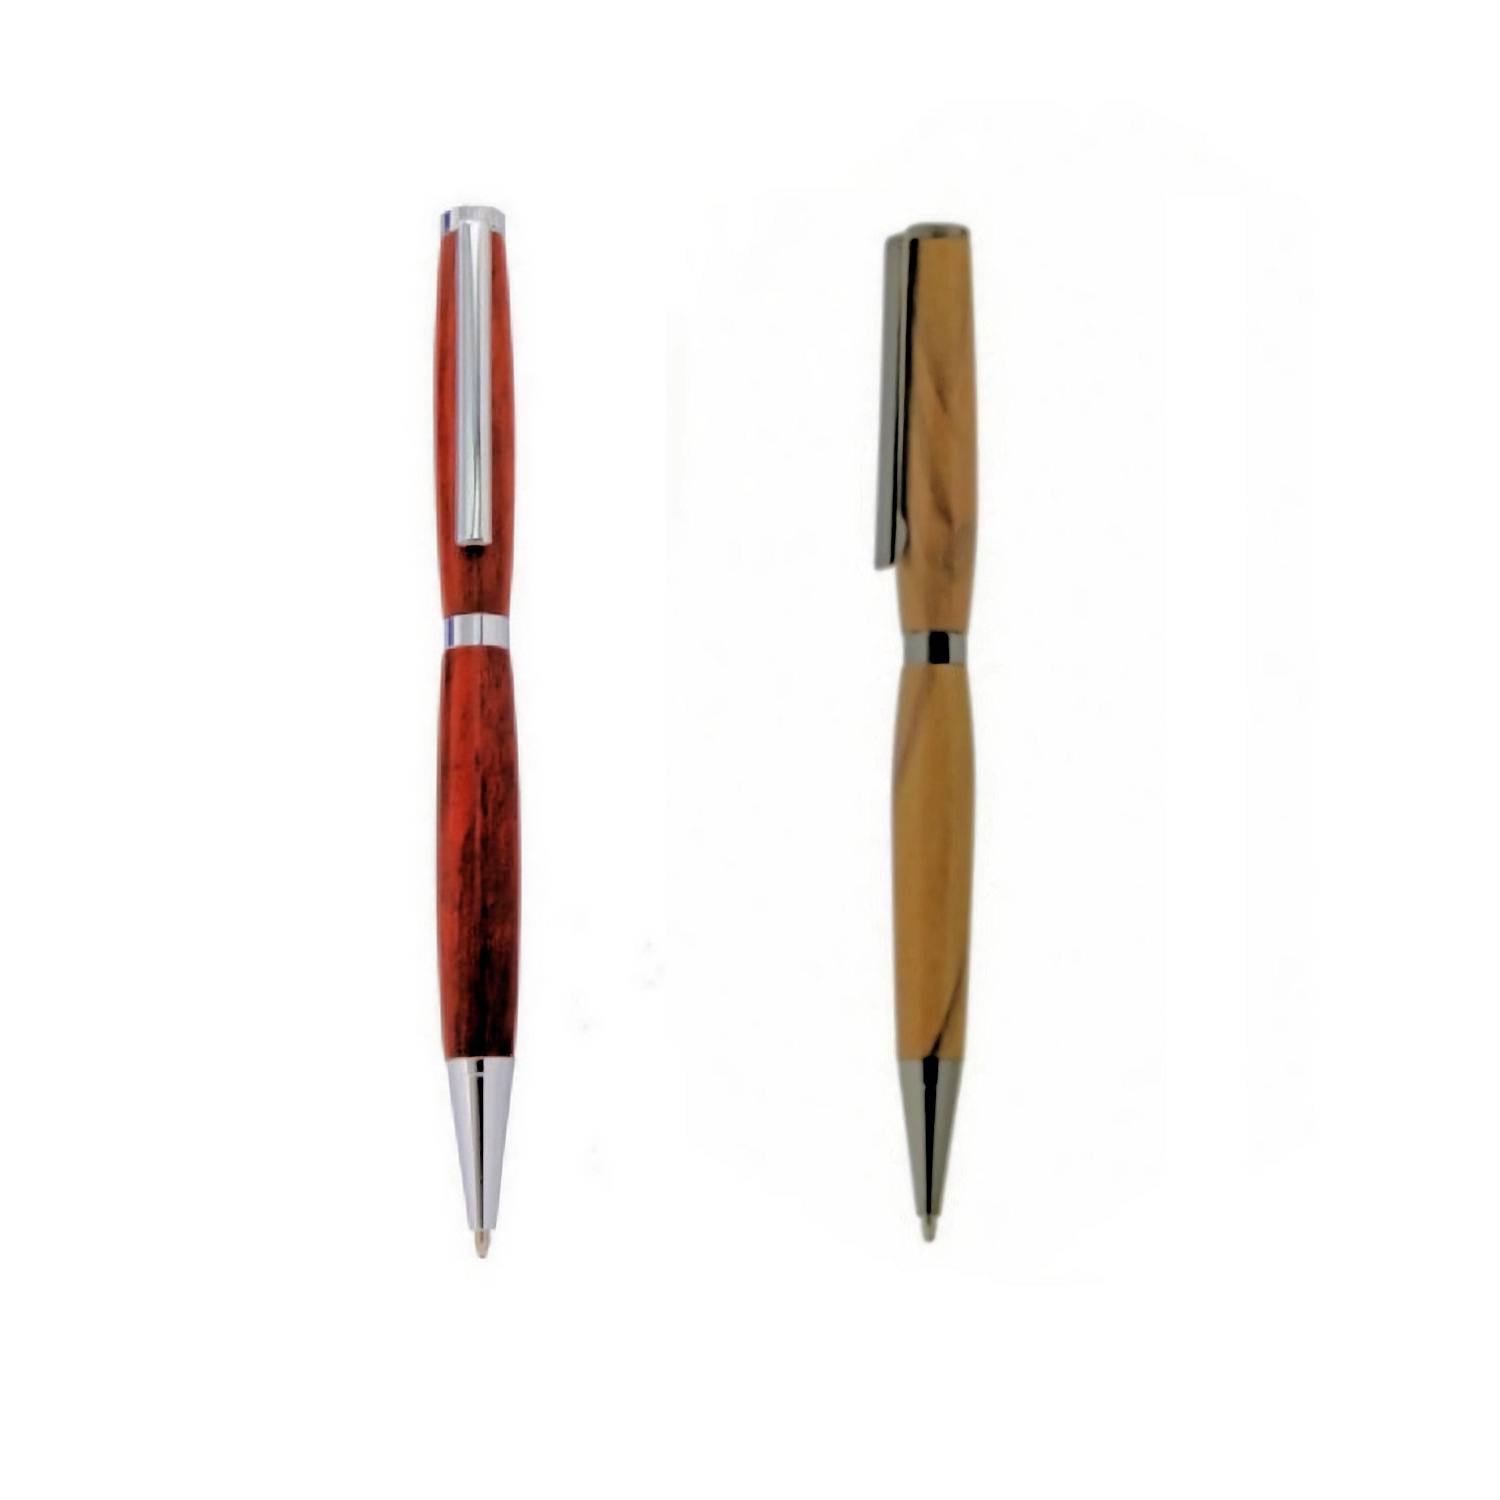 slimline twist pen kit